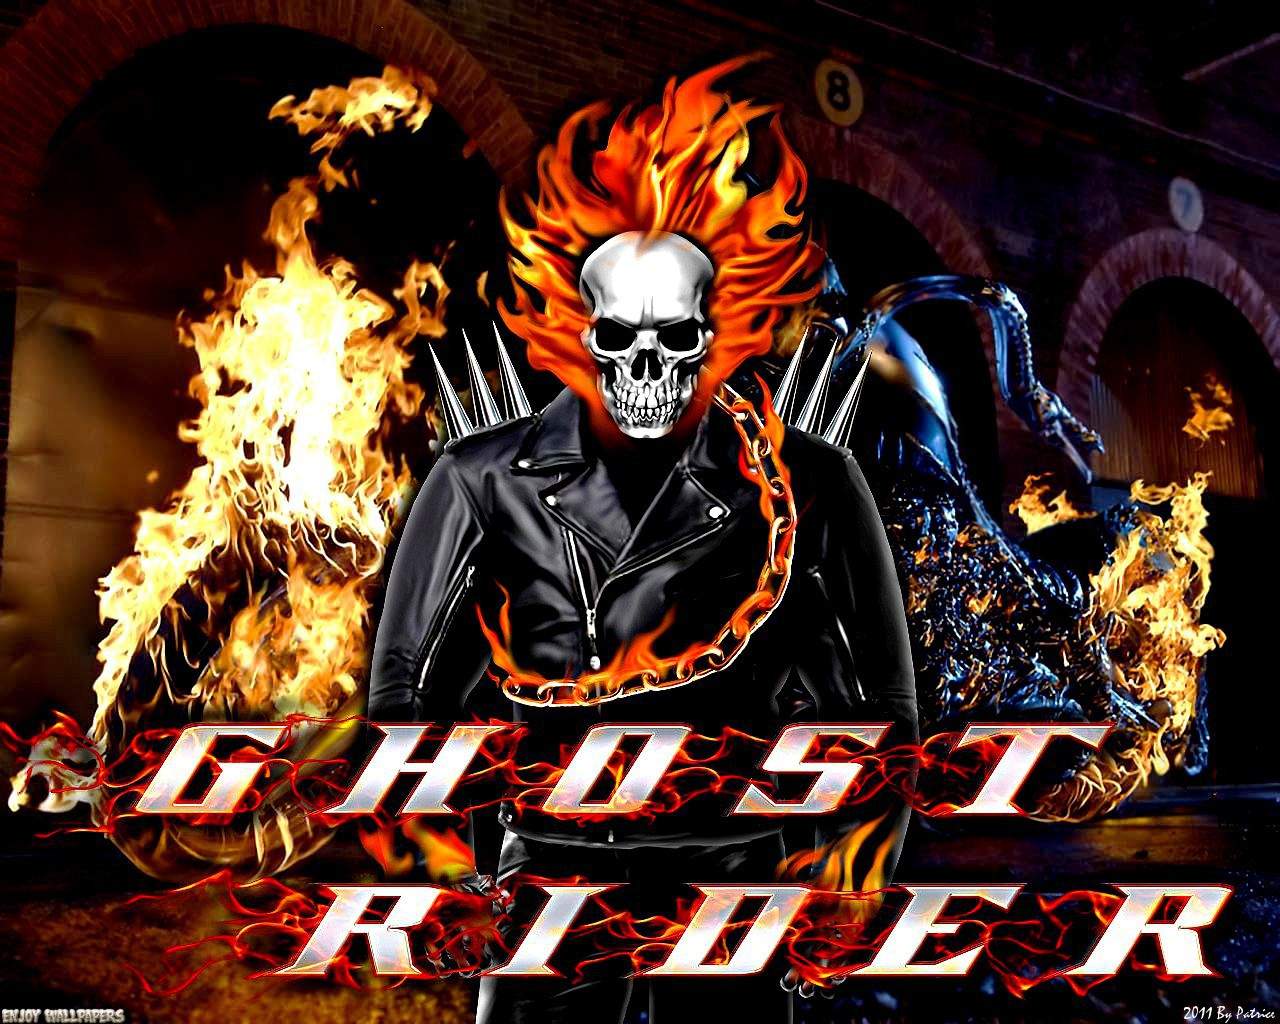 Free download Ghost rider wallpapers ghost rider wallpaper